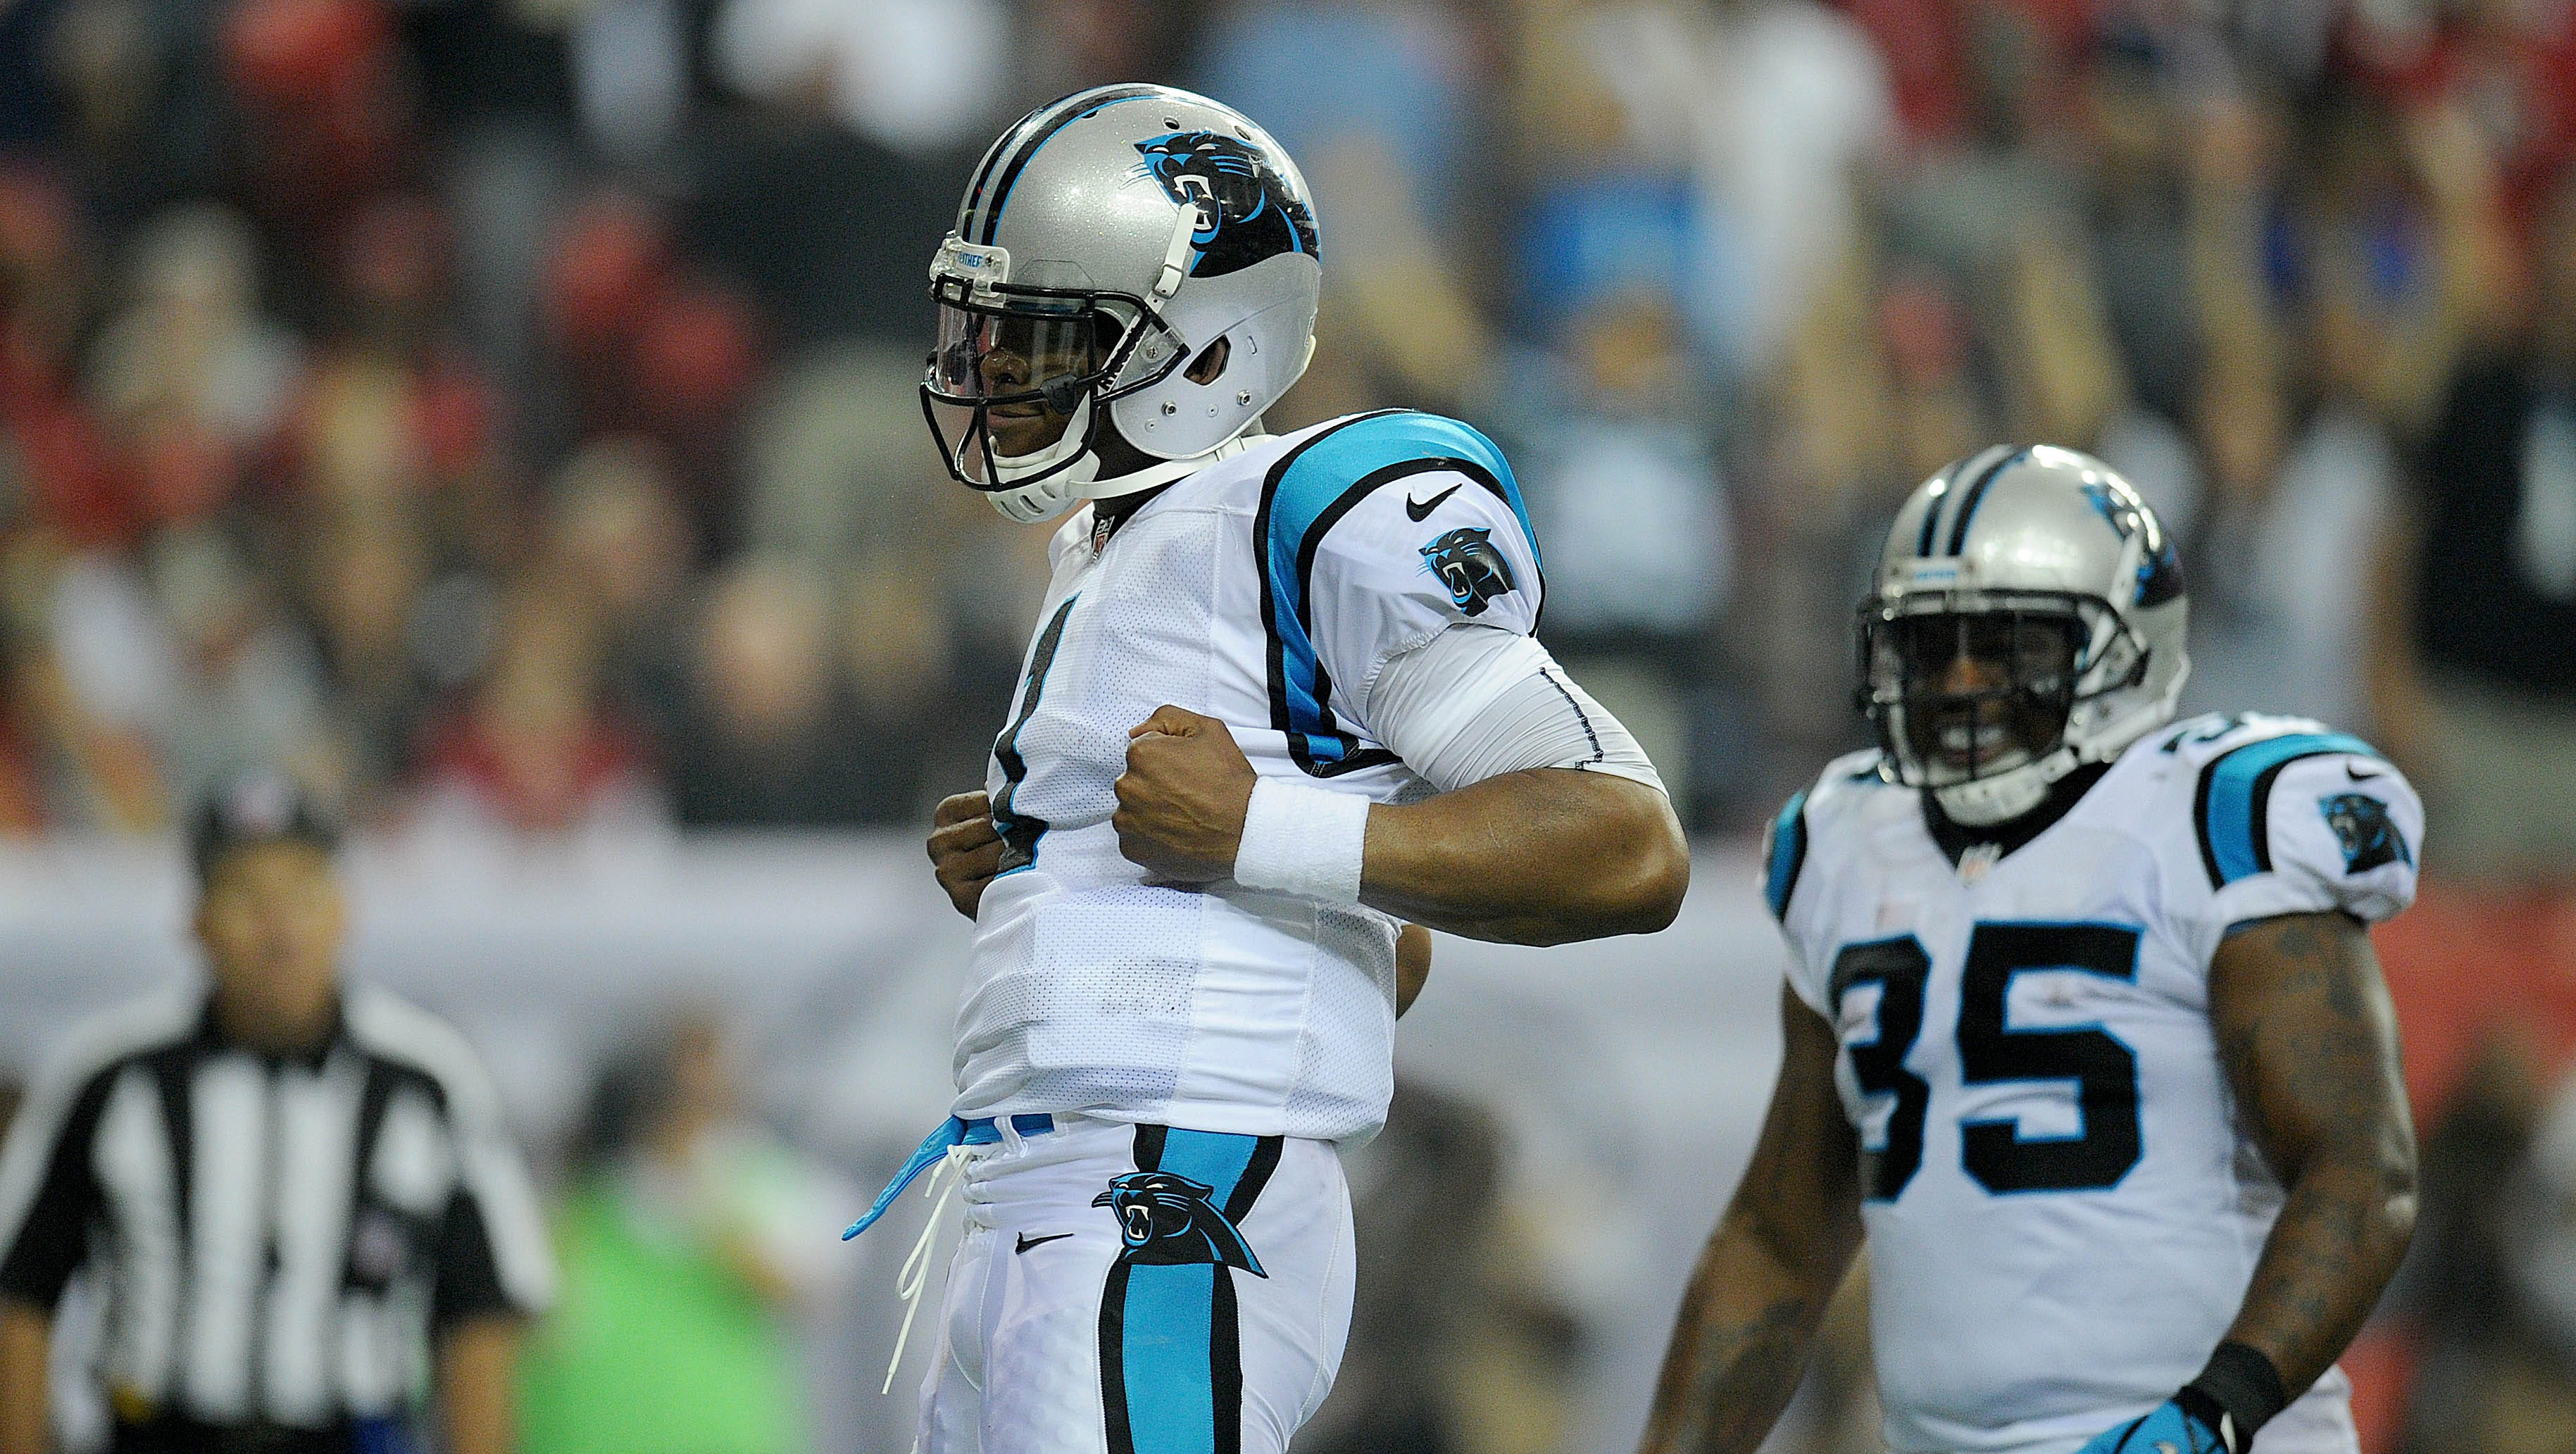 3. Cam Newton, Carolina Panthers